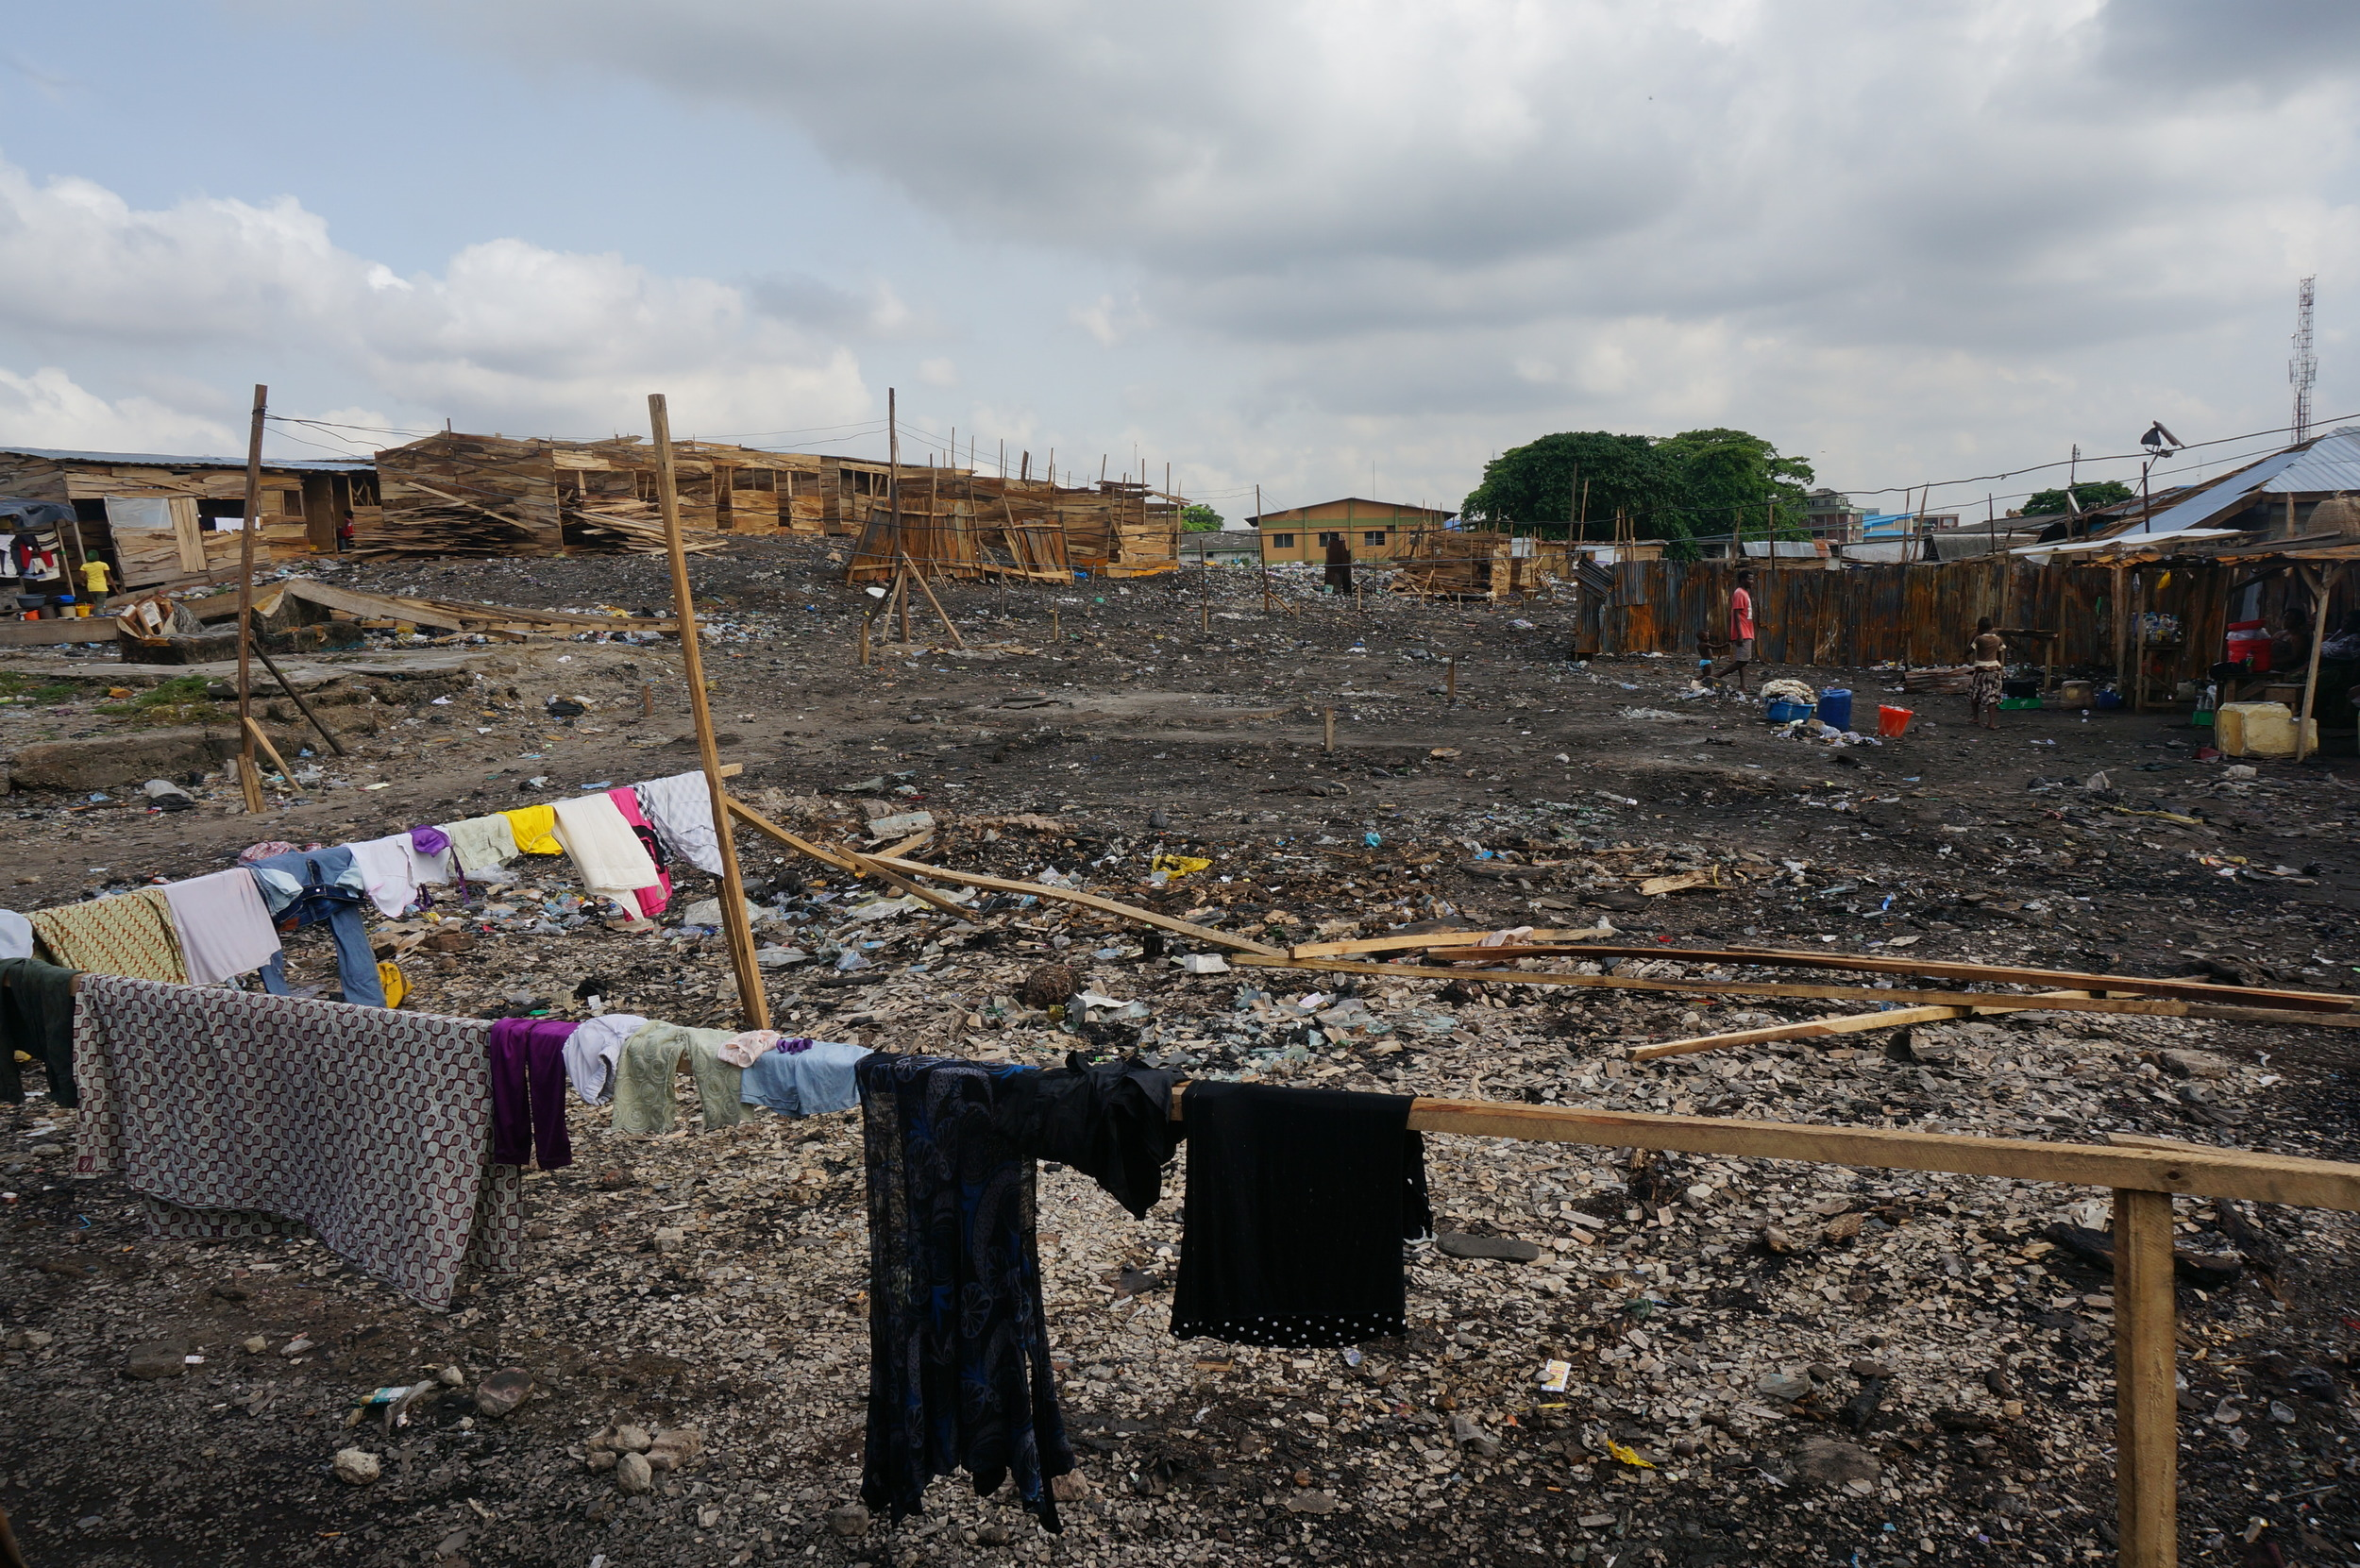 Urban poor communities frequently suffer from natural and man-made disasters, including fire outbreaks and flooding.